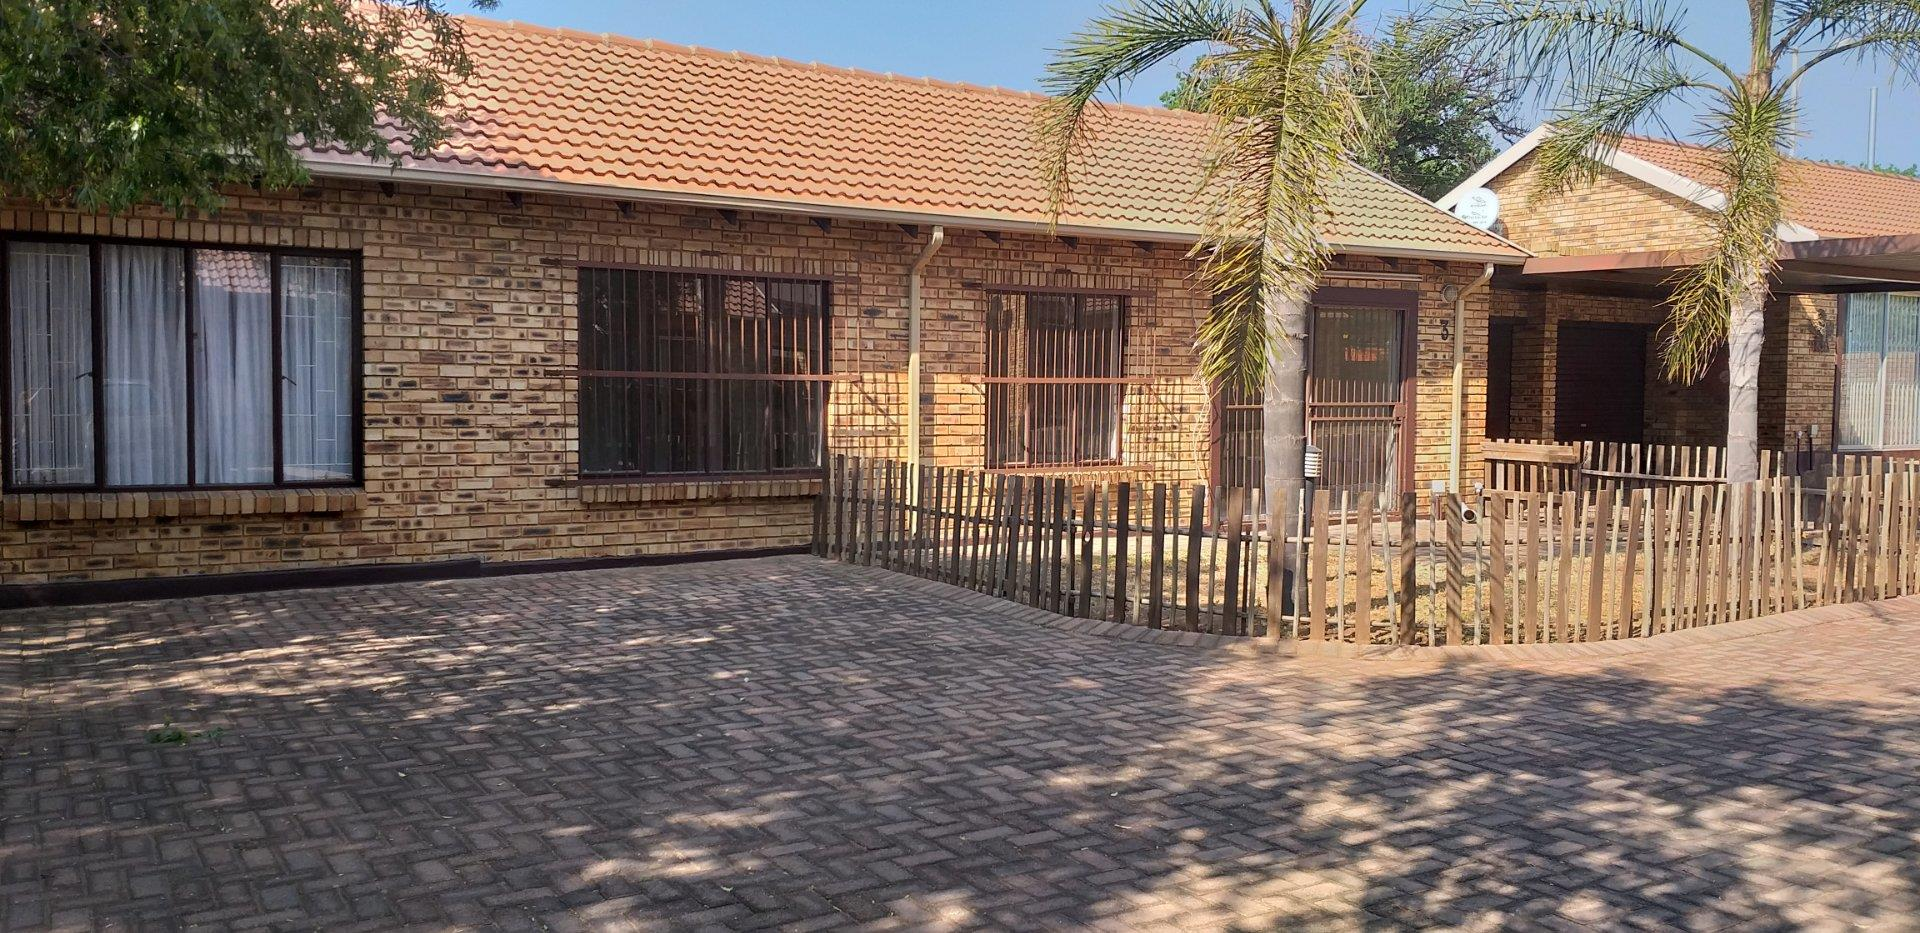 3 Bedroom Townhouse for Sale in Krugersdorp North, Krugersdorp - Gauteng